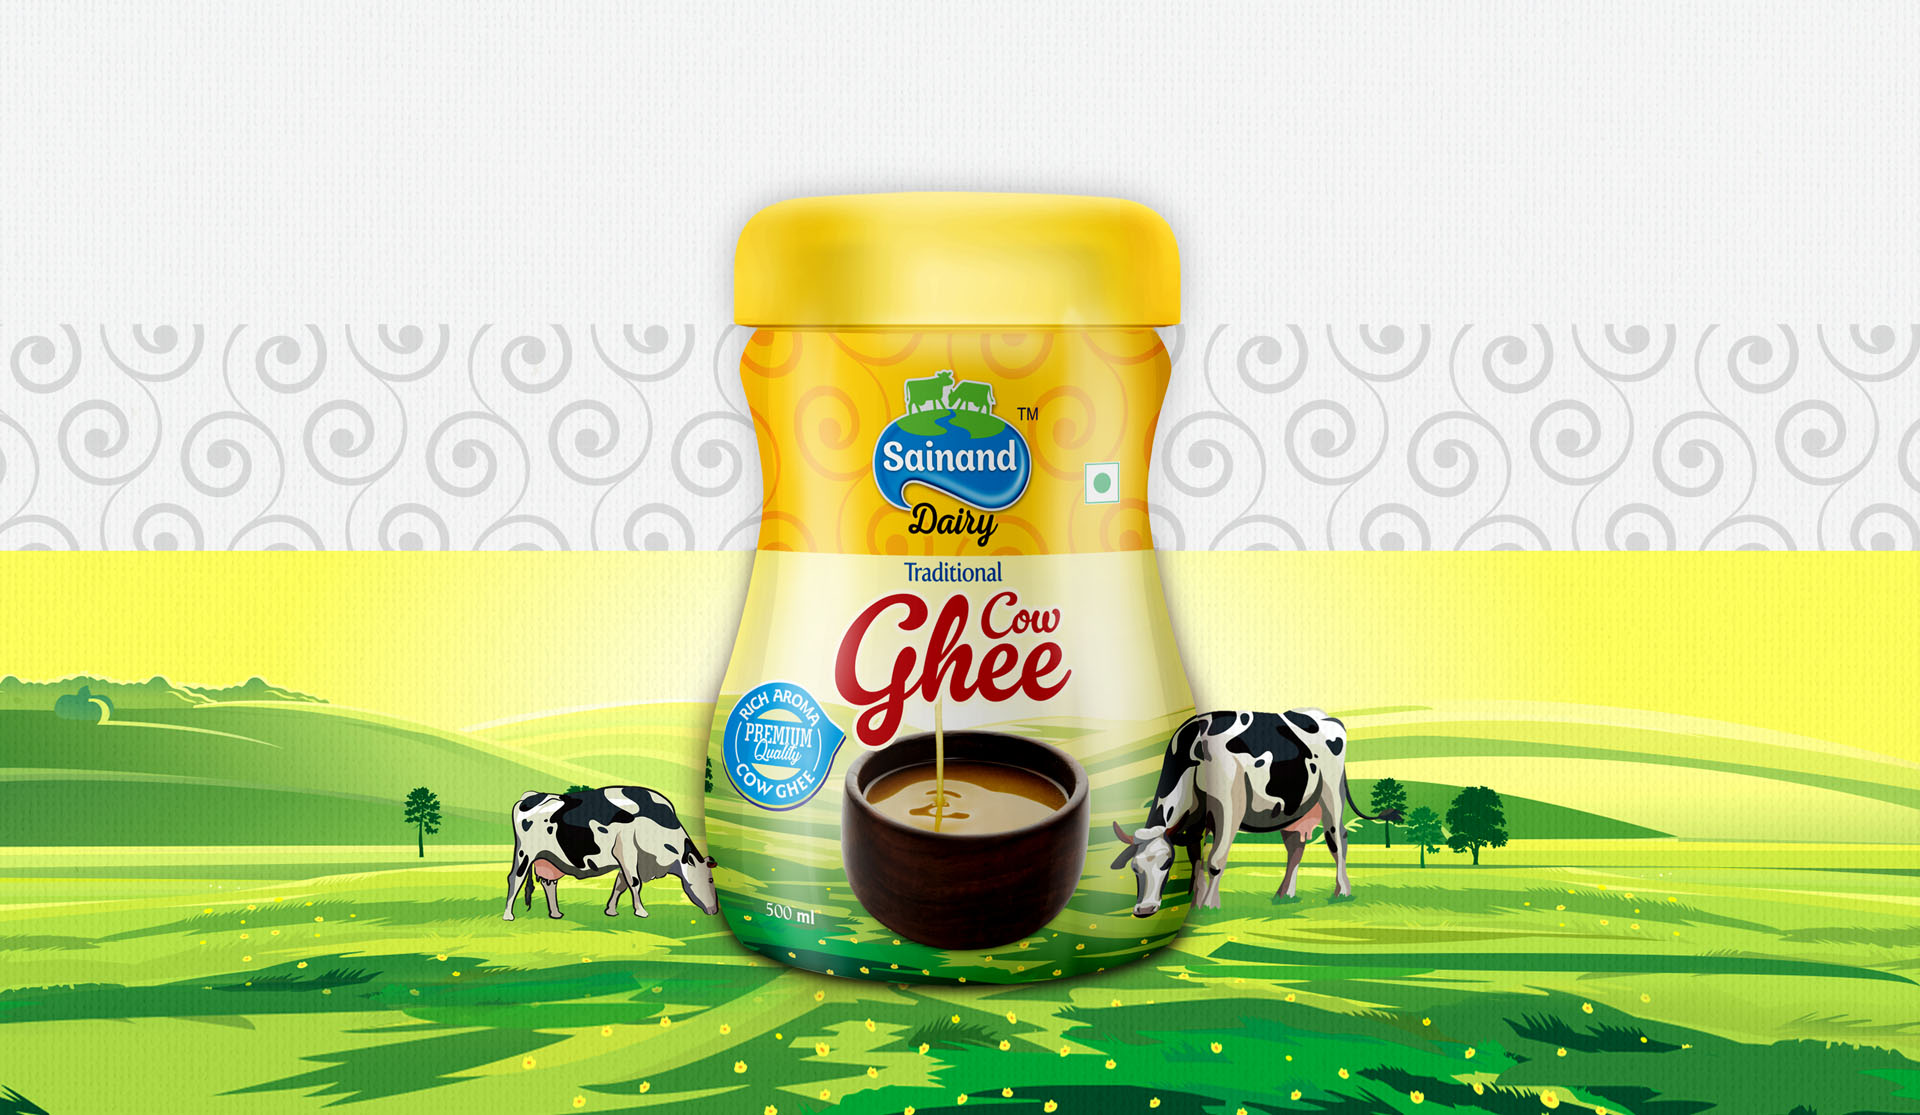 Sainand Dairy – Cow Ghee